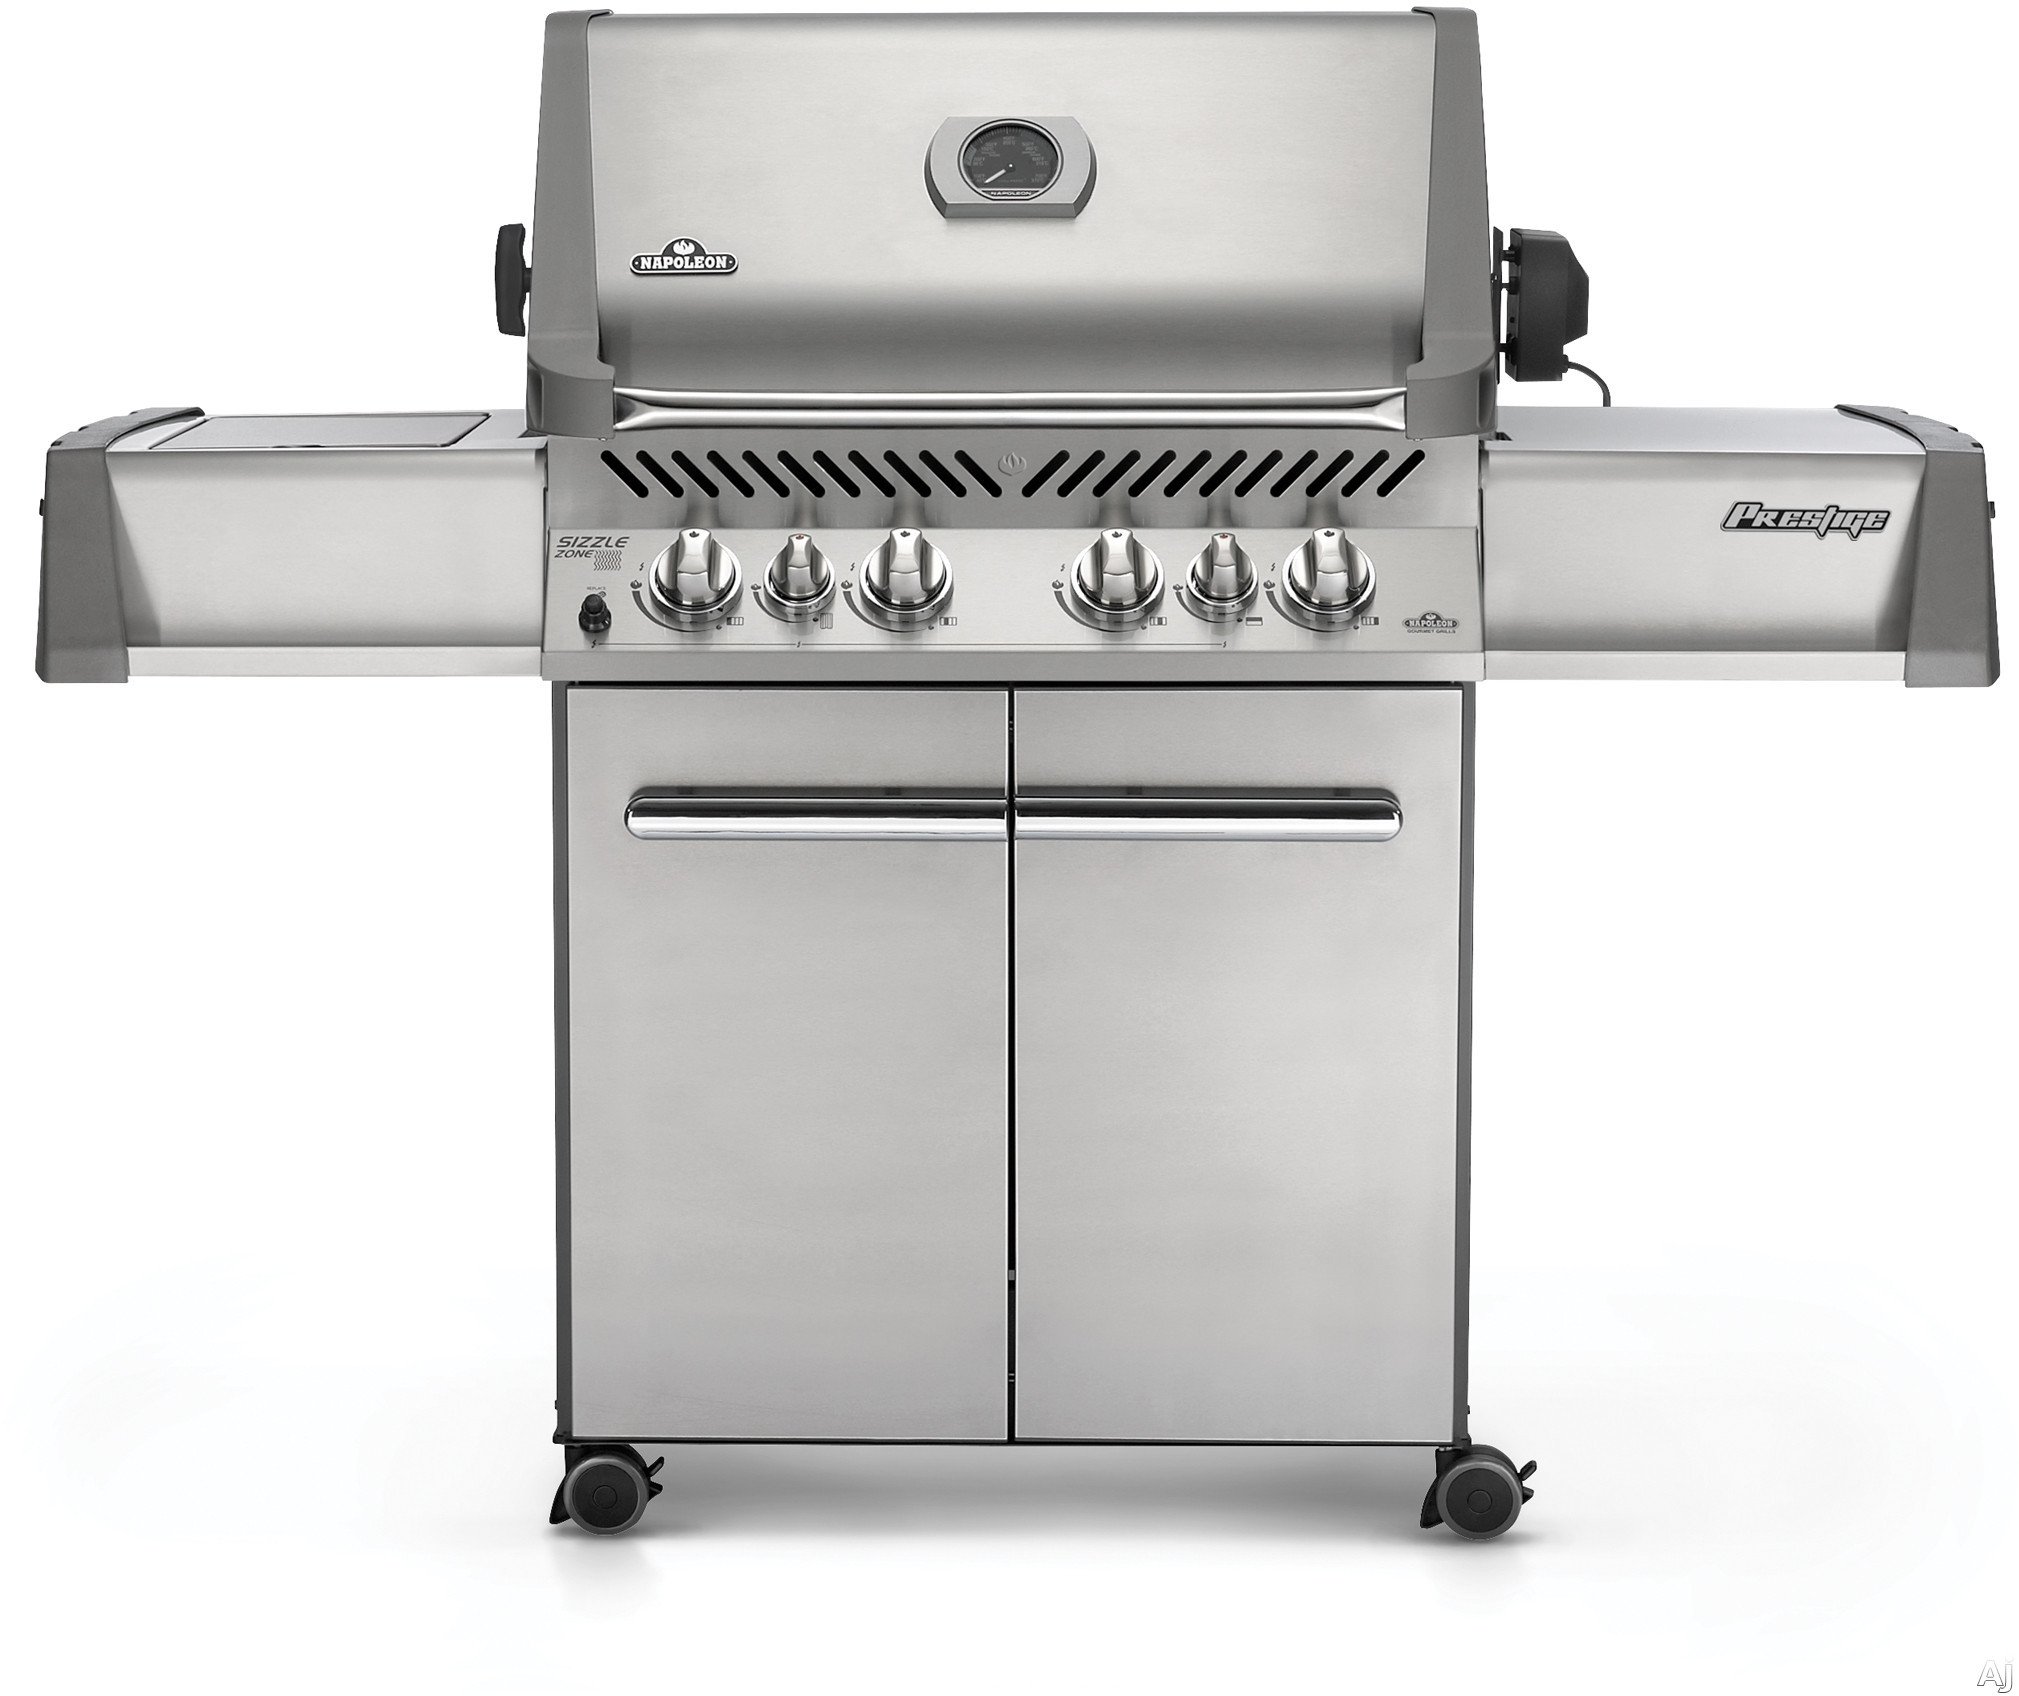 Napoleon 500 Series P500RSIBPSS1 64 Inch Freestanding Gas Grill with 80 000 Total BTUs 900 sq in Cooking Space JETFIRE Ignition 6 Burners incl 2 Infrared Burners Rotisserie and Heavy Duty Casters Liquid Propane Stainless Steel